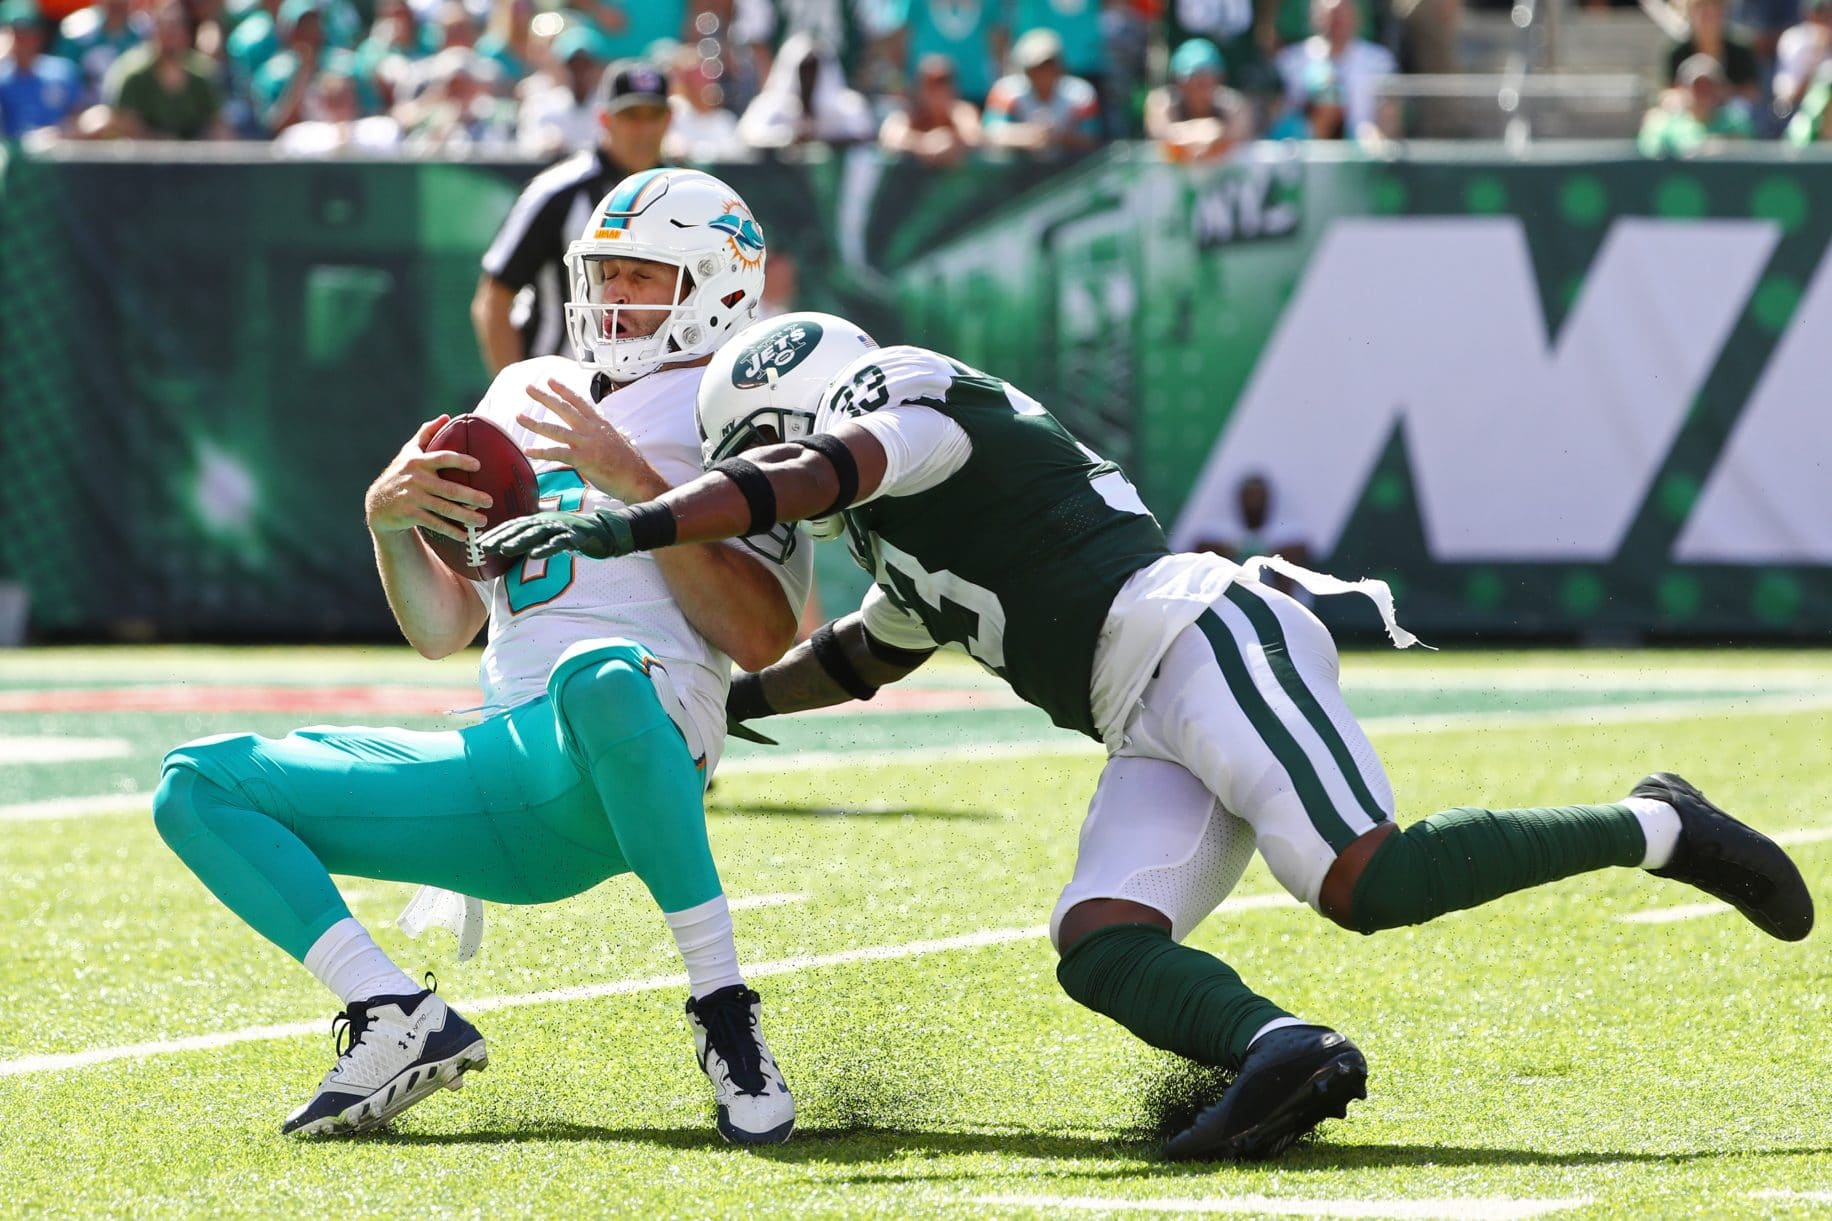 Tank This: Jamal Adams, New York Jets Clobber Miami Dolphins, 20-6 (Highlights)